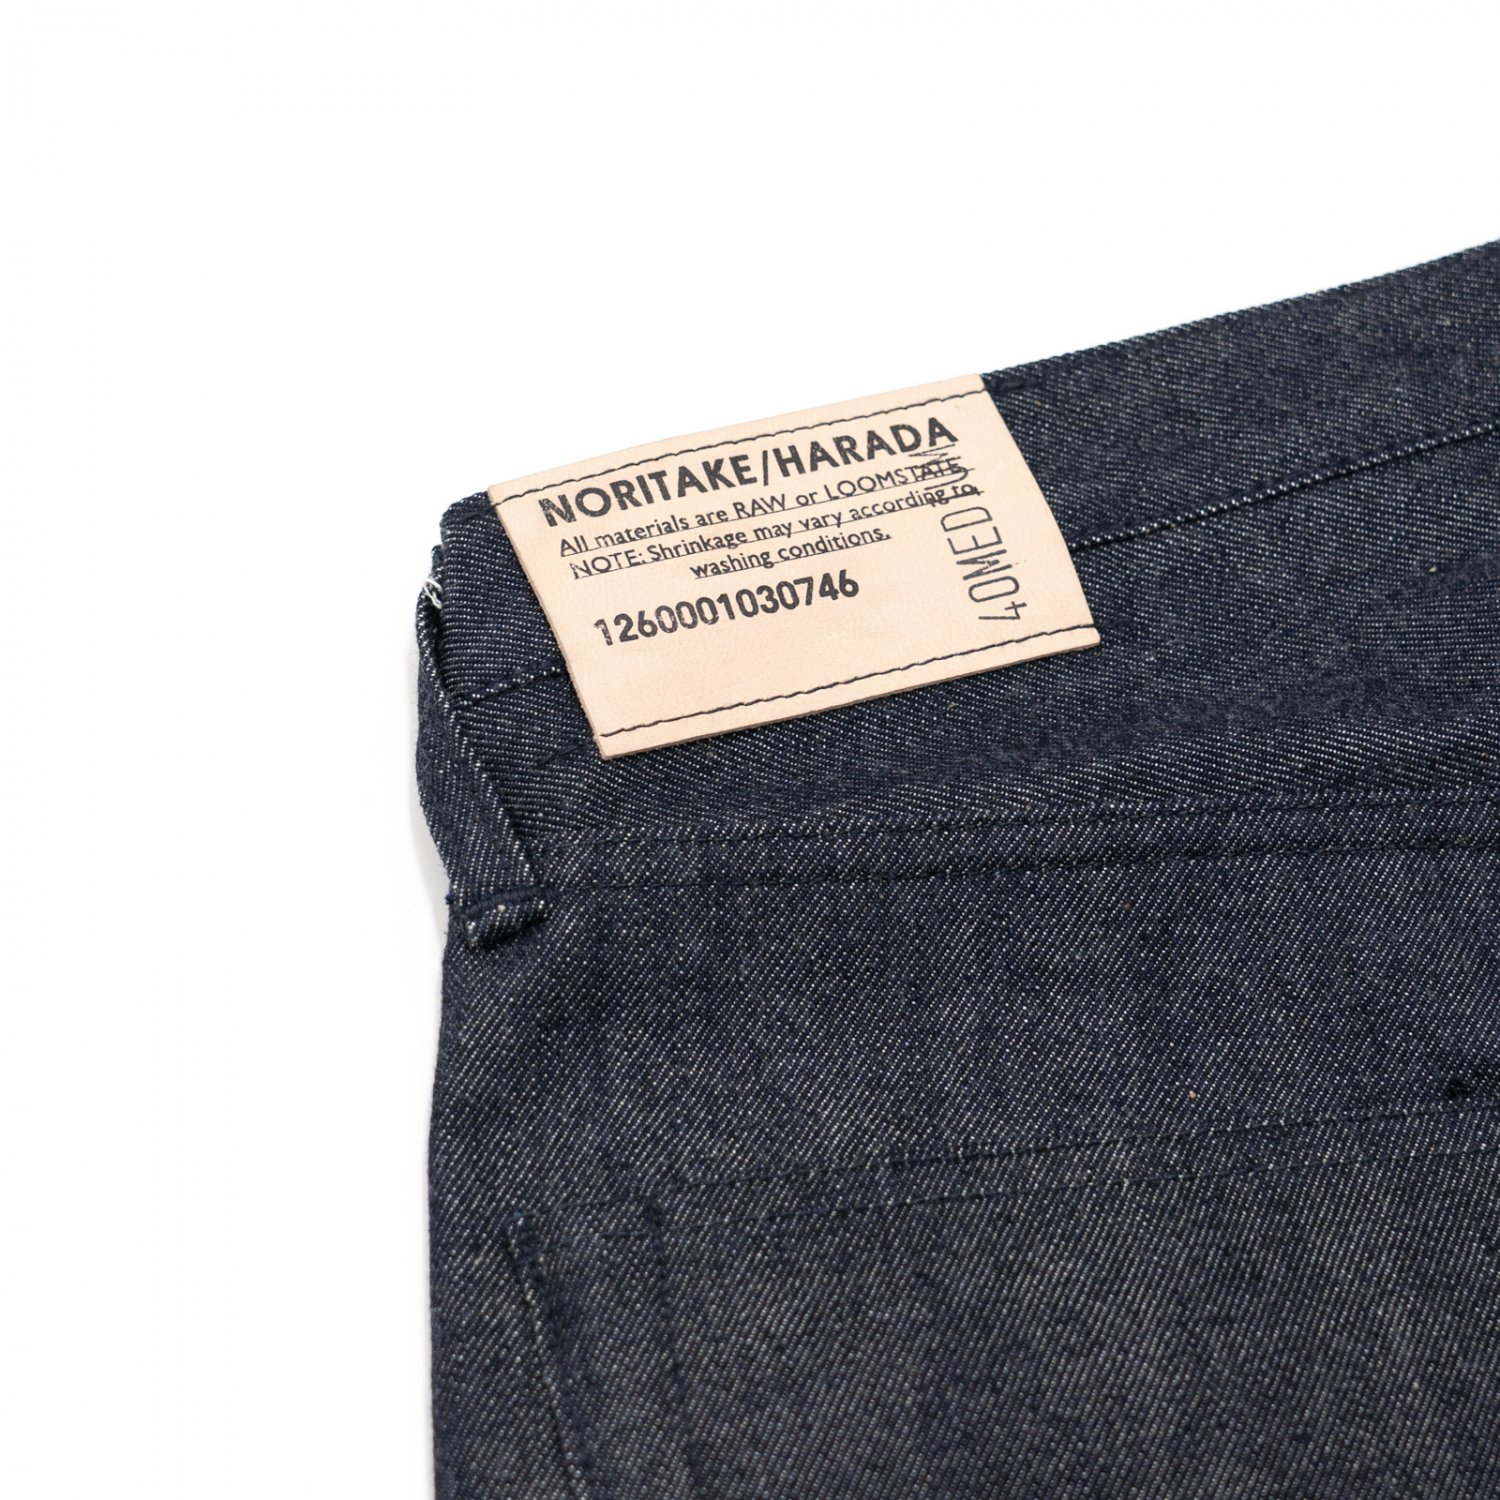 NORITAKE/HARADA * Denim Pants 40inch Medium